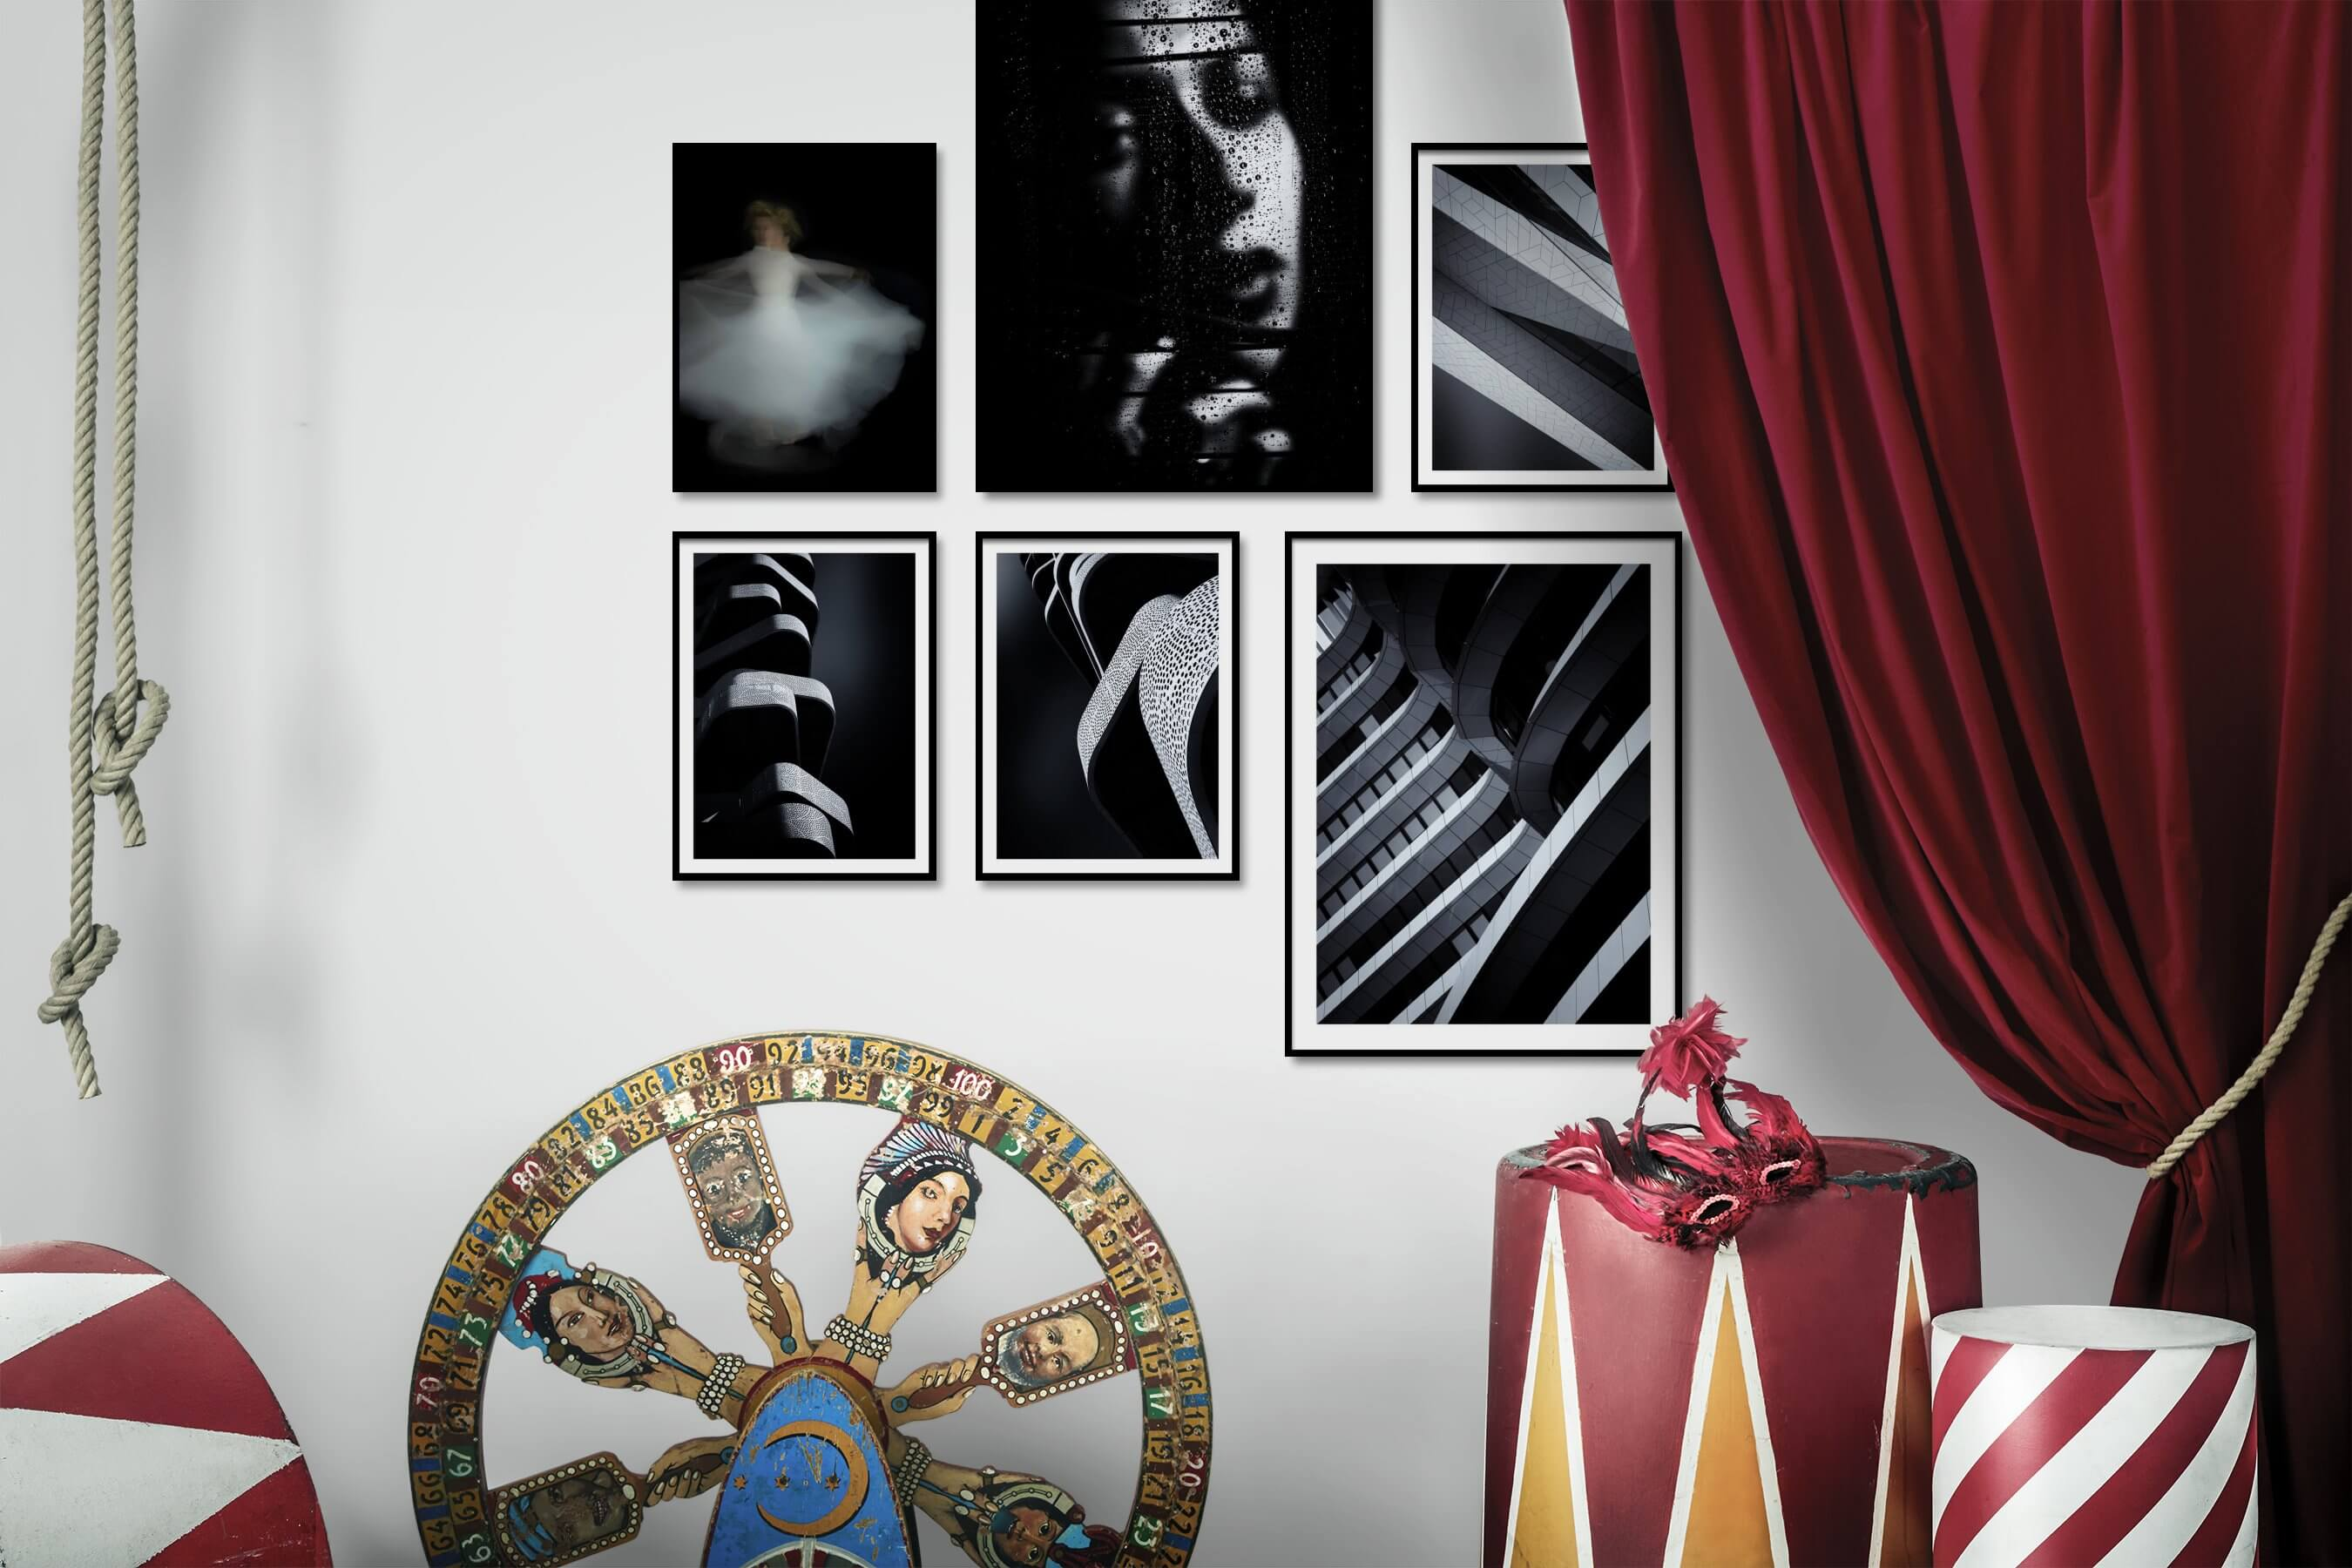 Gallery wall idea with six framed pictures arranged on a wall depicting Fashion & Beauty, Dark Tones, For the Minimalist, Black & White, For the Moderate, and For the Maximalist